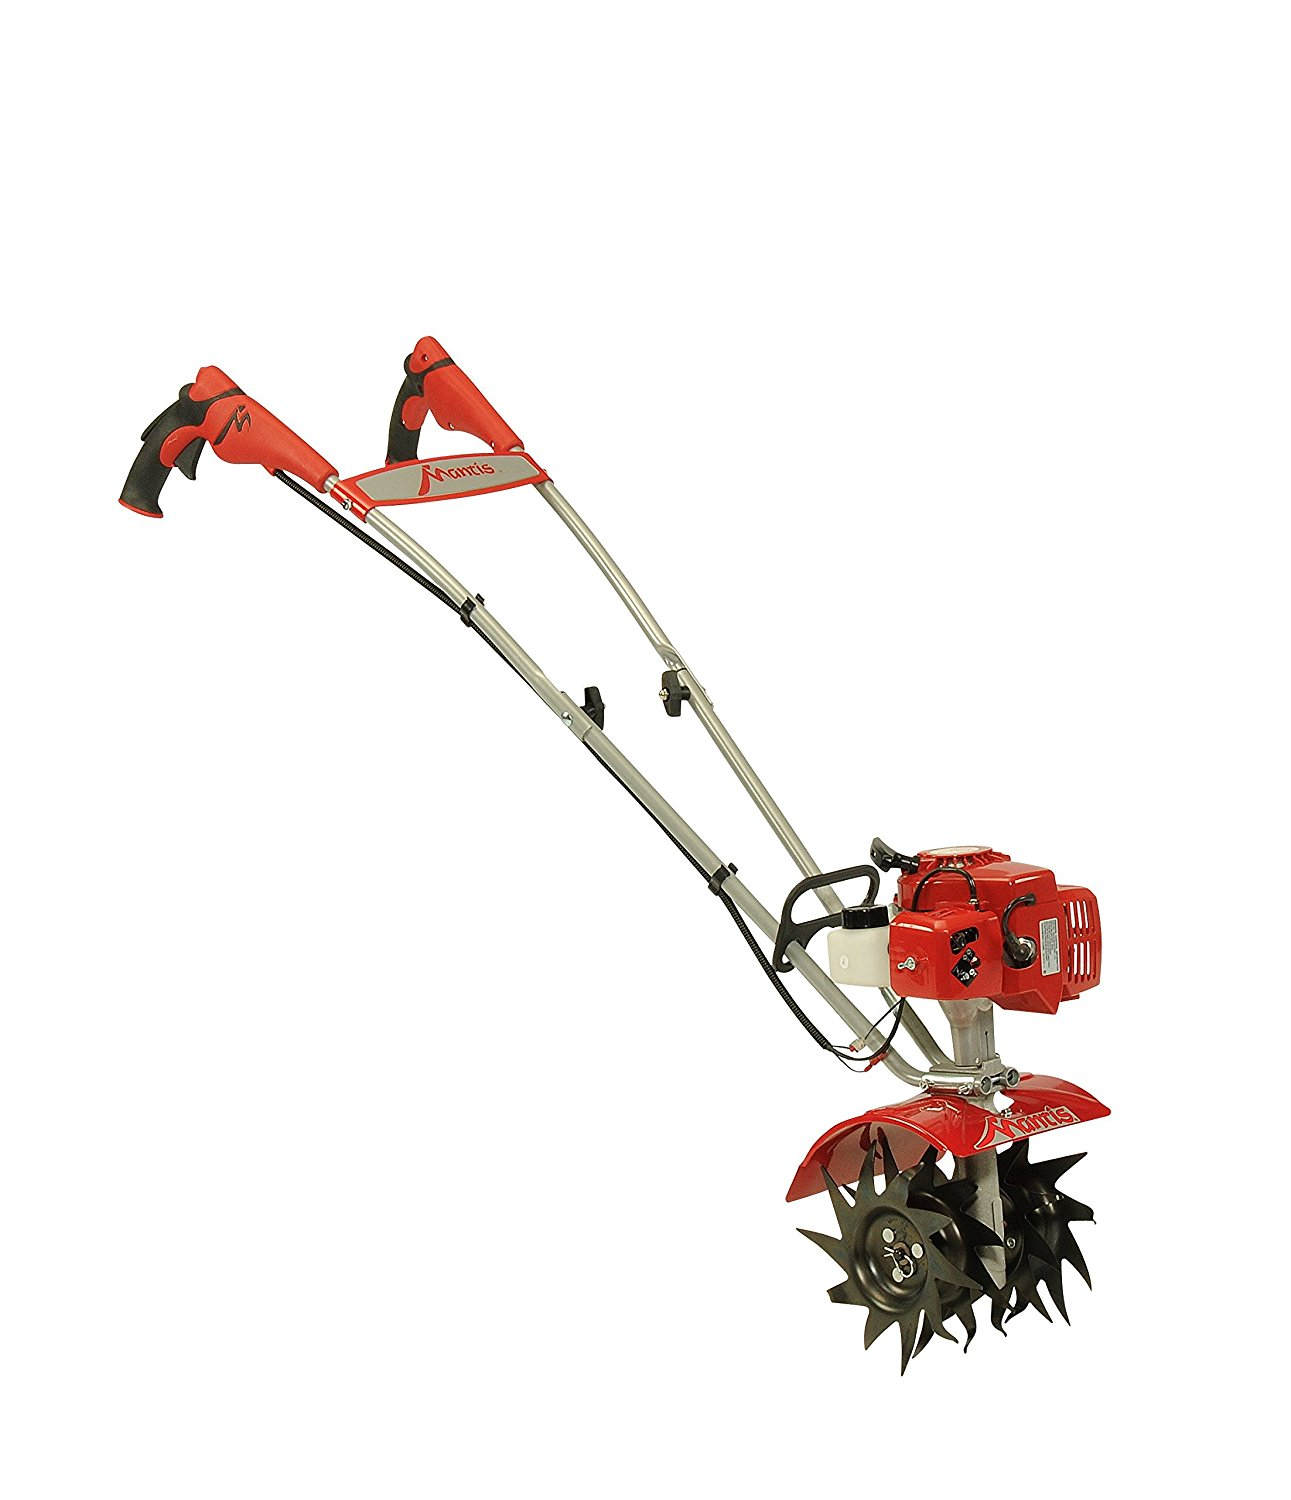 Mantis 7920 2-Cycle Ultra-Lightweight and Compact Gas Garden Tiller and Cultivator - Sure-Grip Handles, Also Available in 4 Cycle